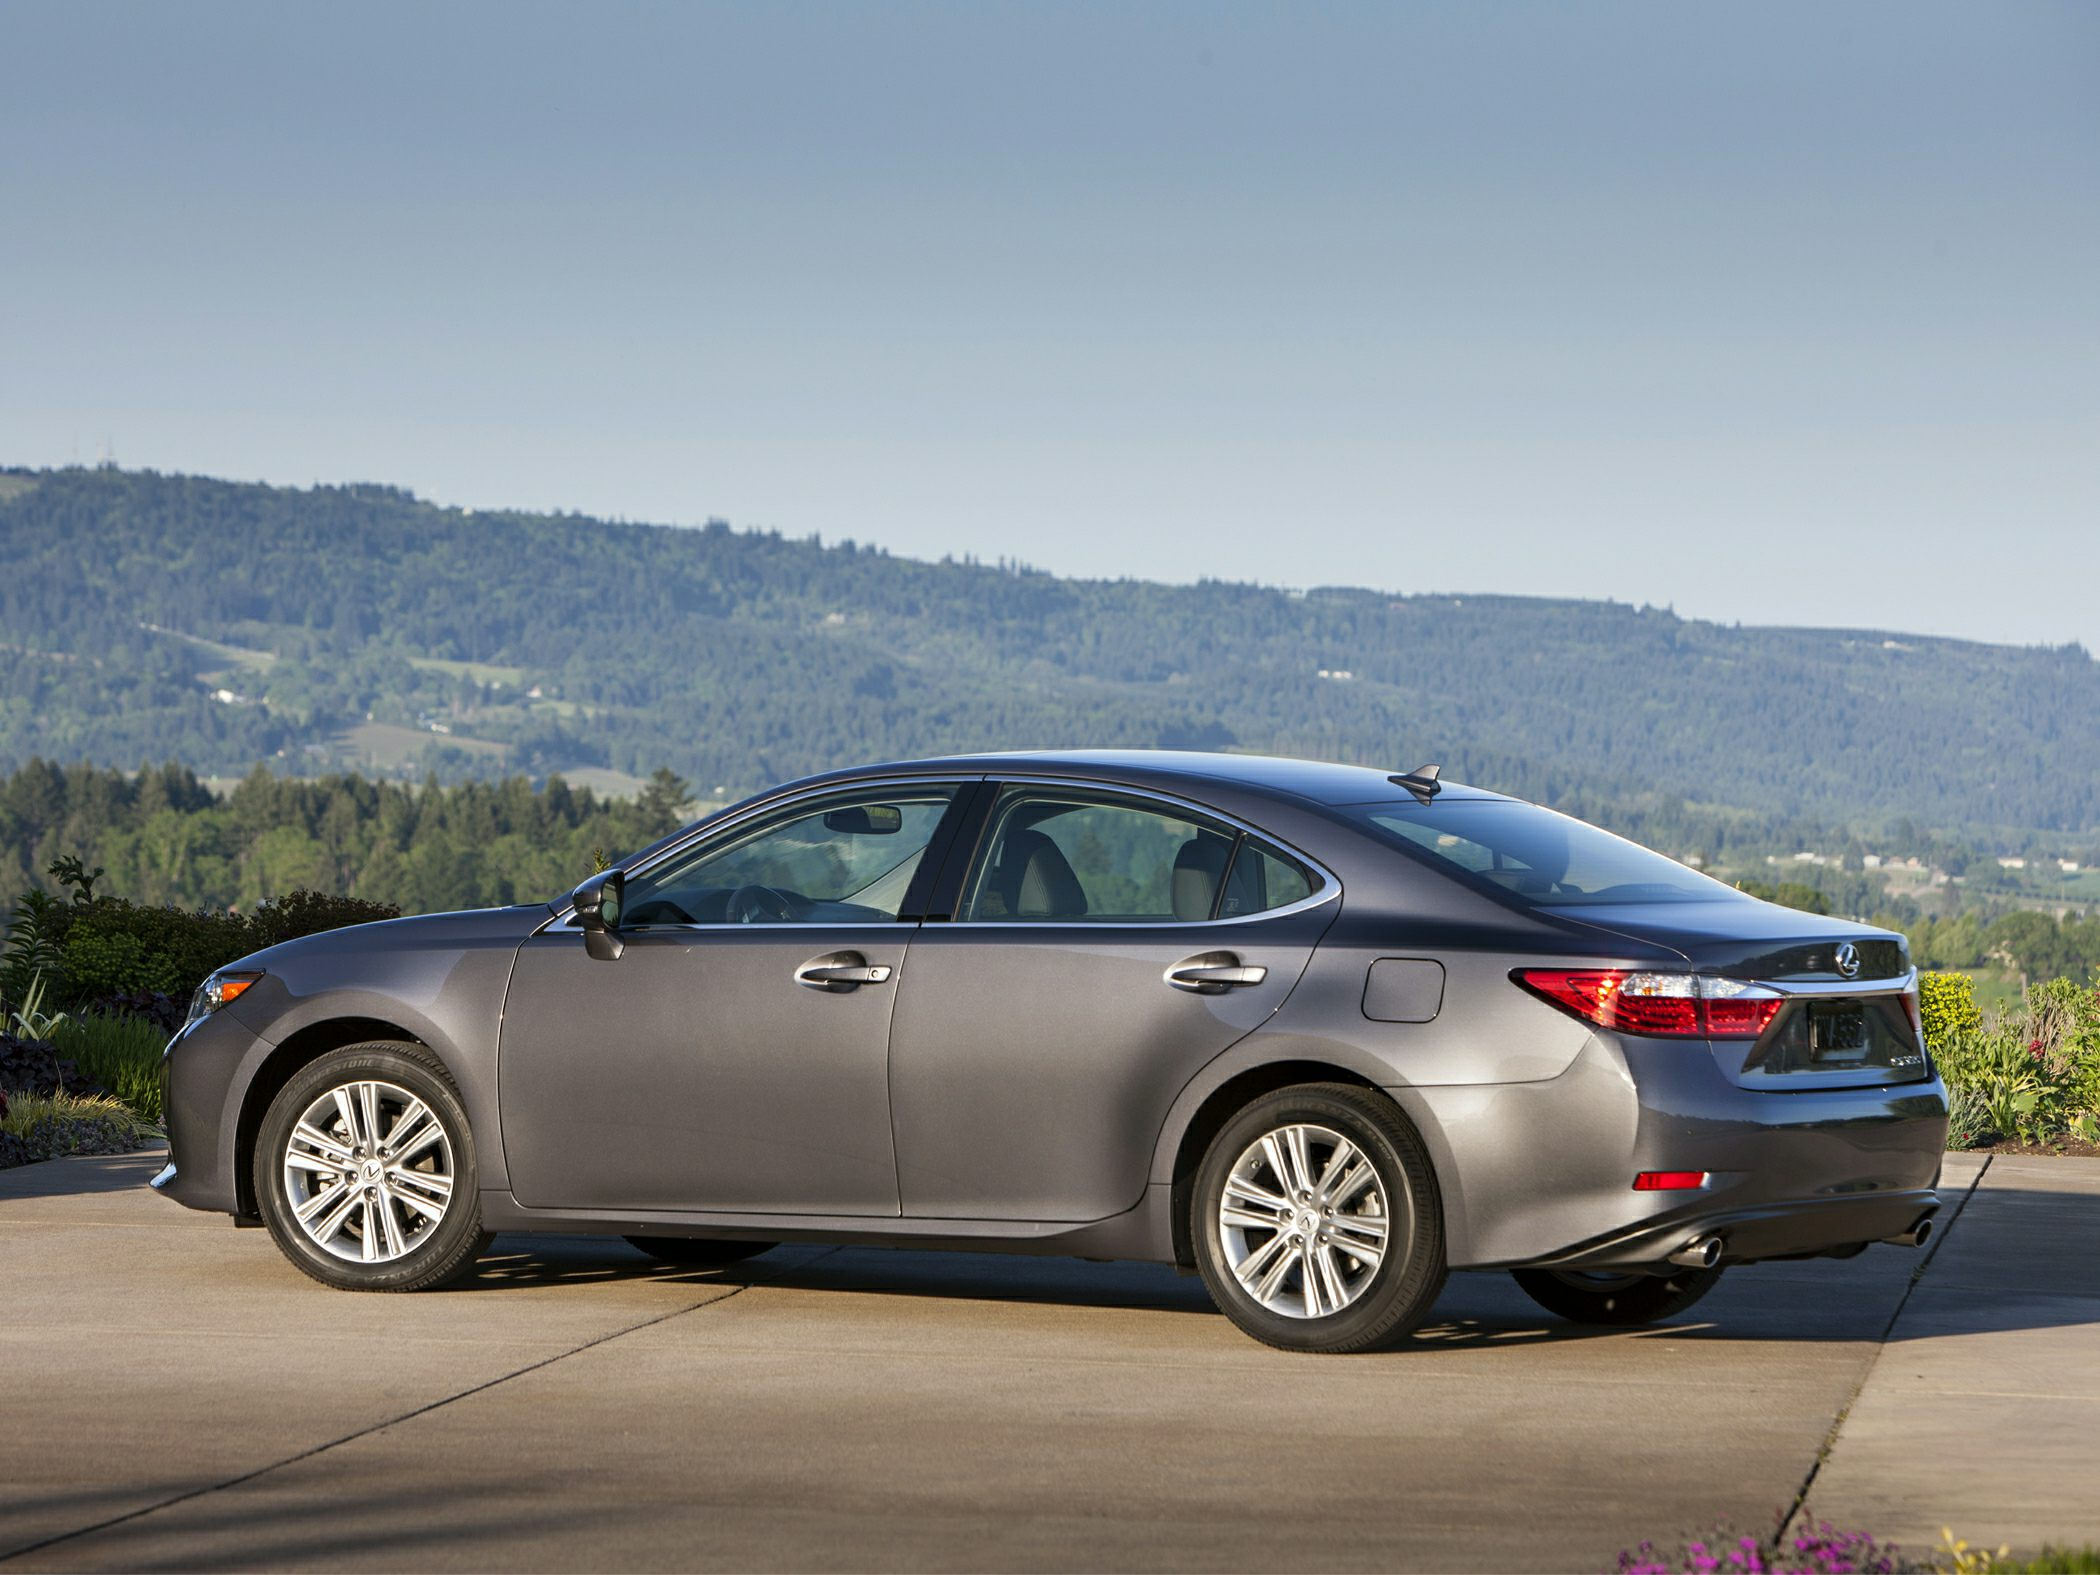 2014-Lexus-ES-350-Sedan-Base-4dr-Sedan-Exterior-1